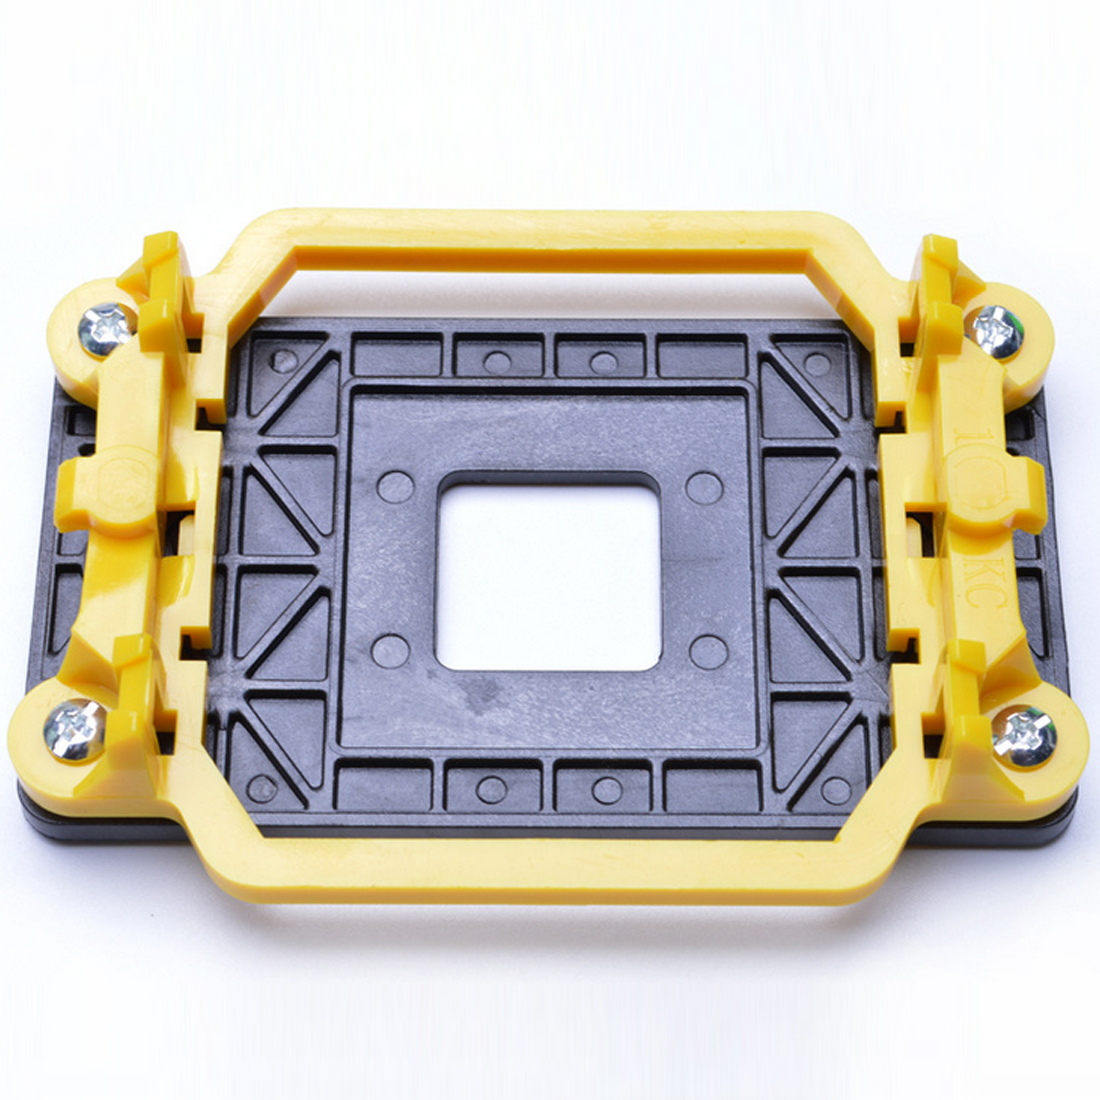 Etmakit Top Quality CPU Cooler Bracket Motherboard for AMD AM2/AM2+/AM3/AM3+/FM1/FM2/FM2+/940/939 Install the fastening